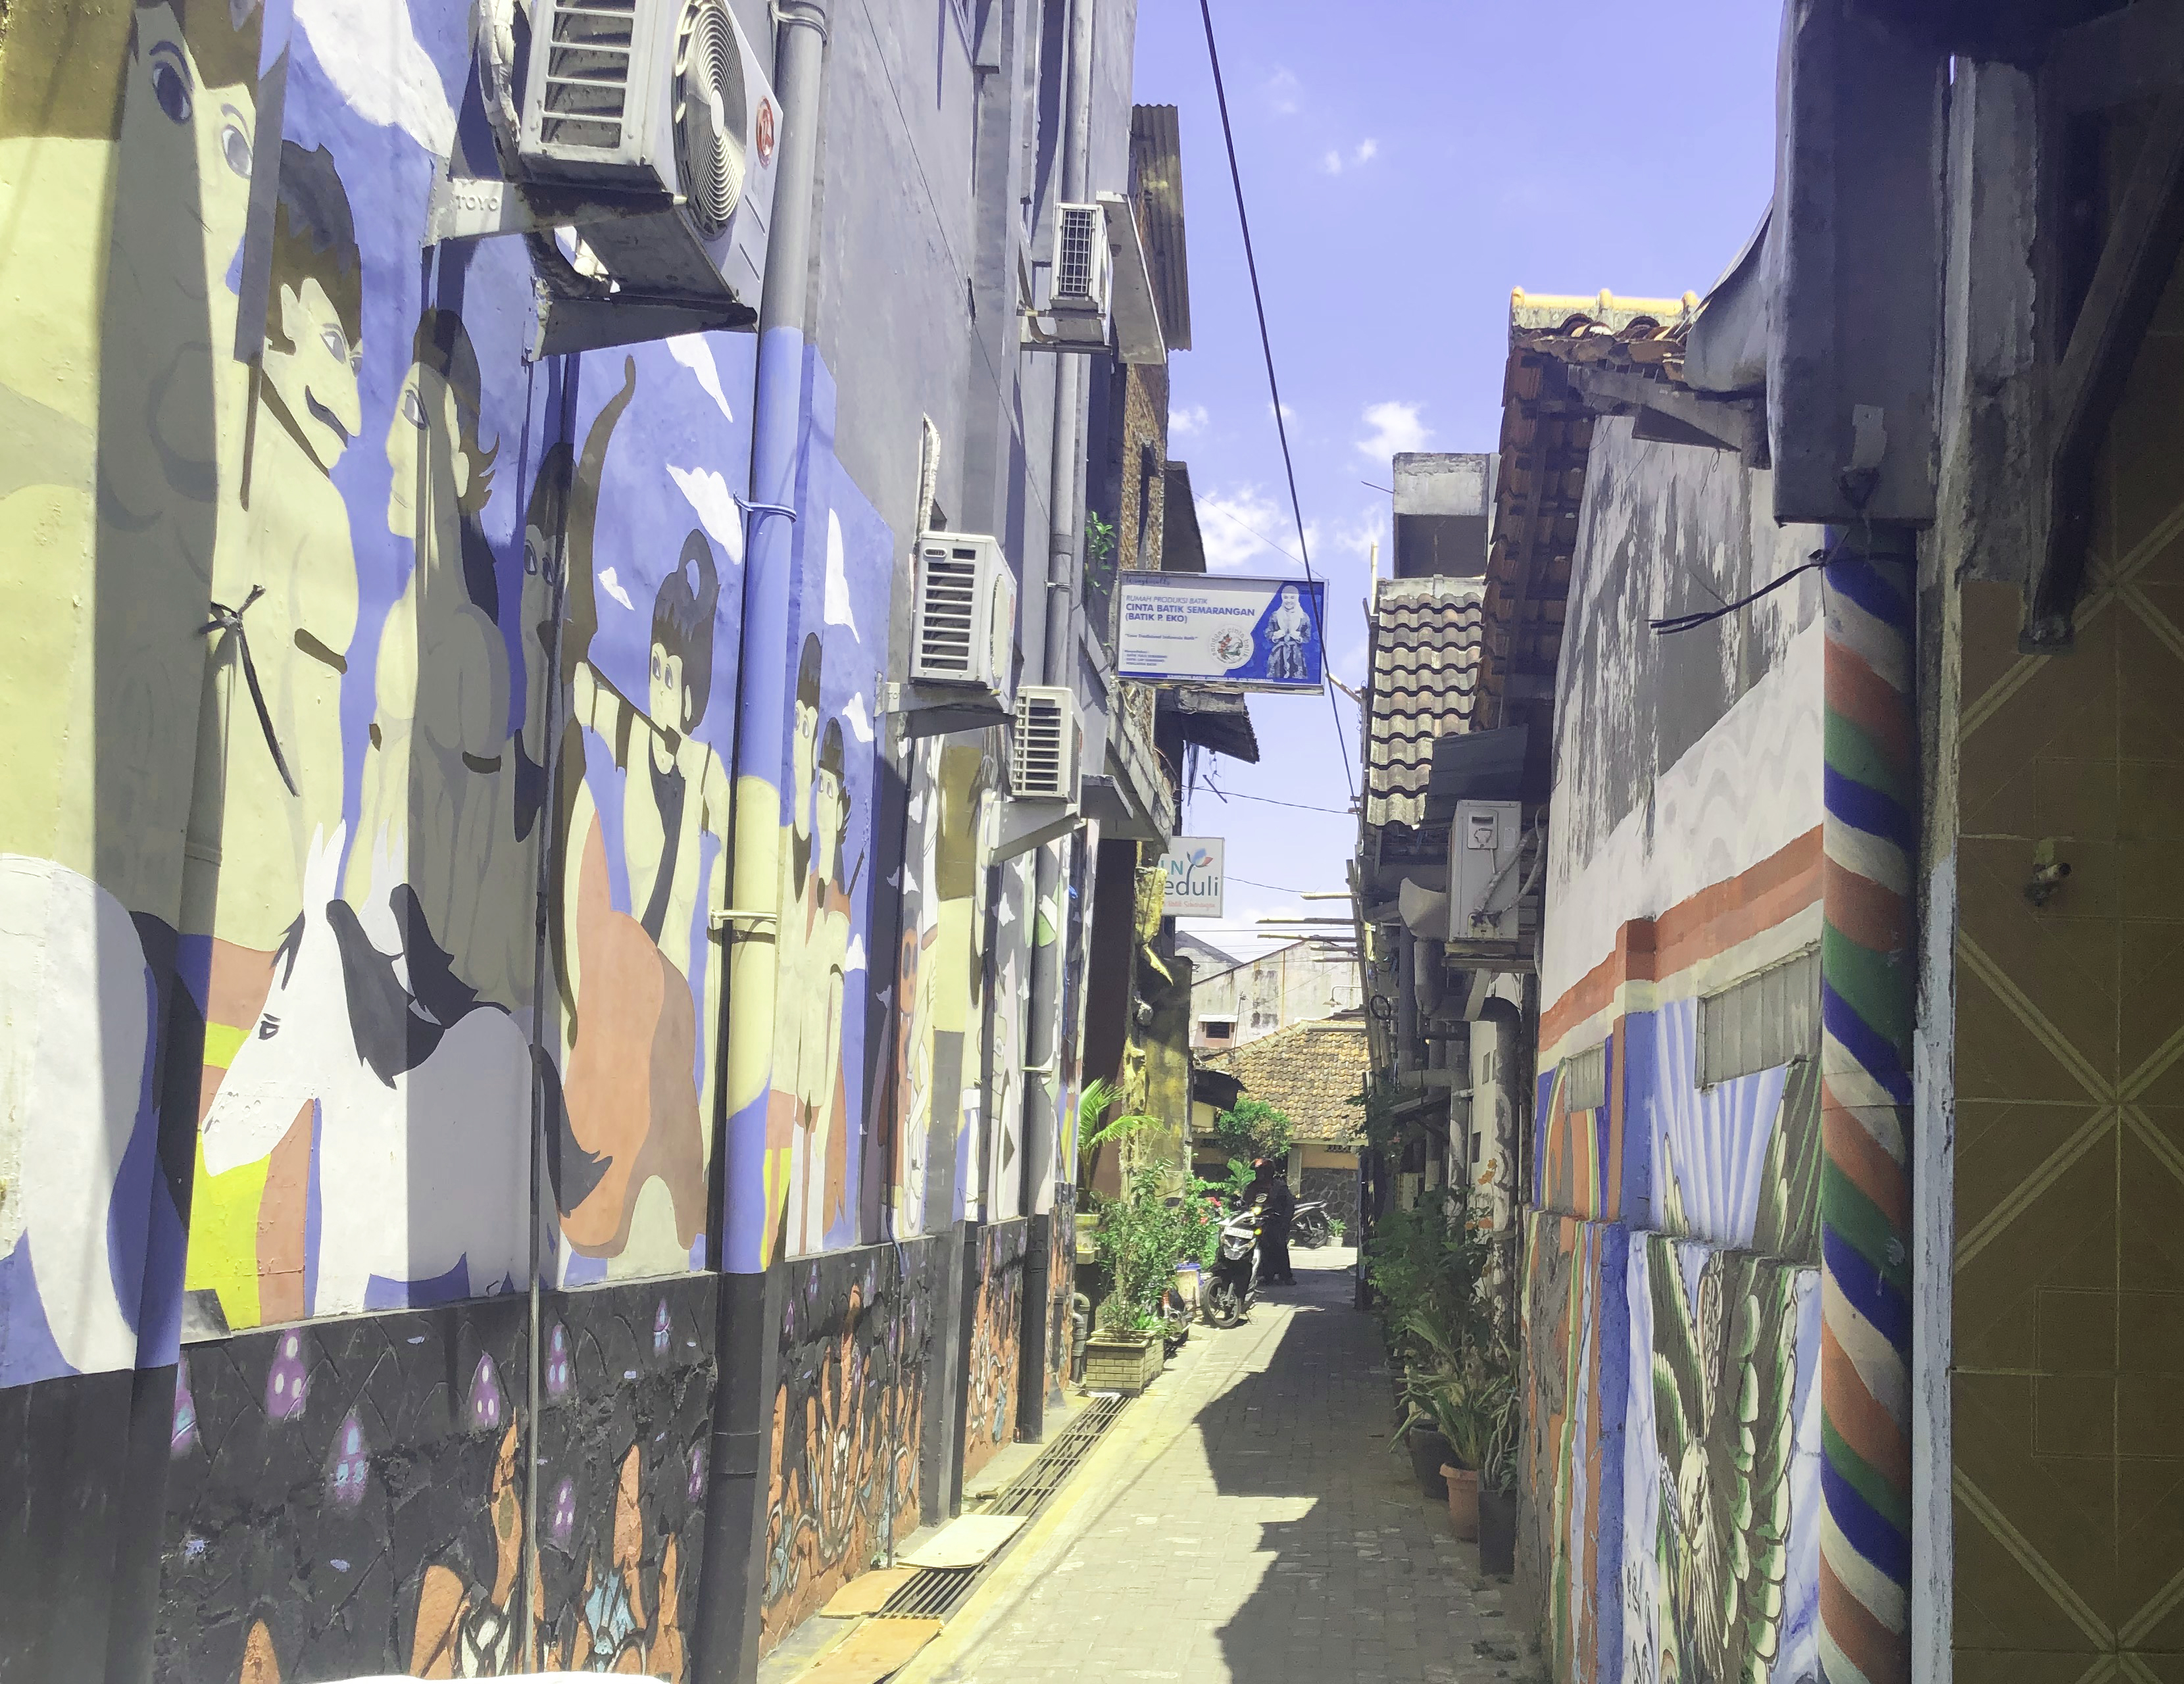 Alleyway in Kampung Batik Gedong (Image: Daisy Meager)